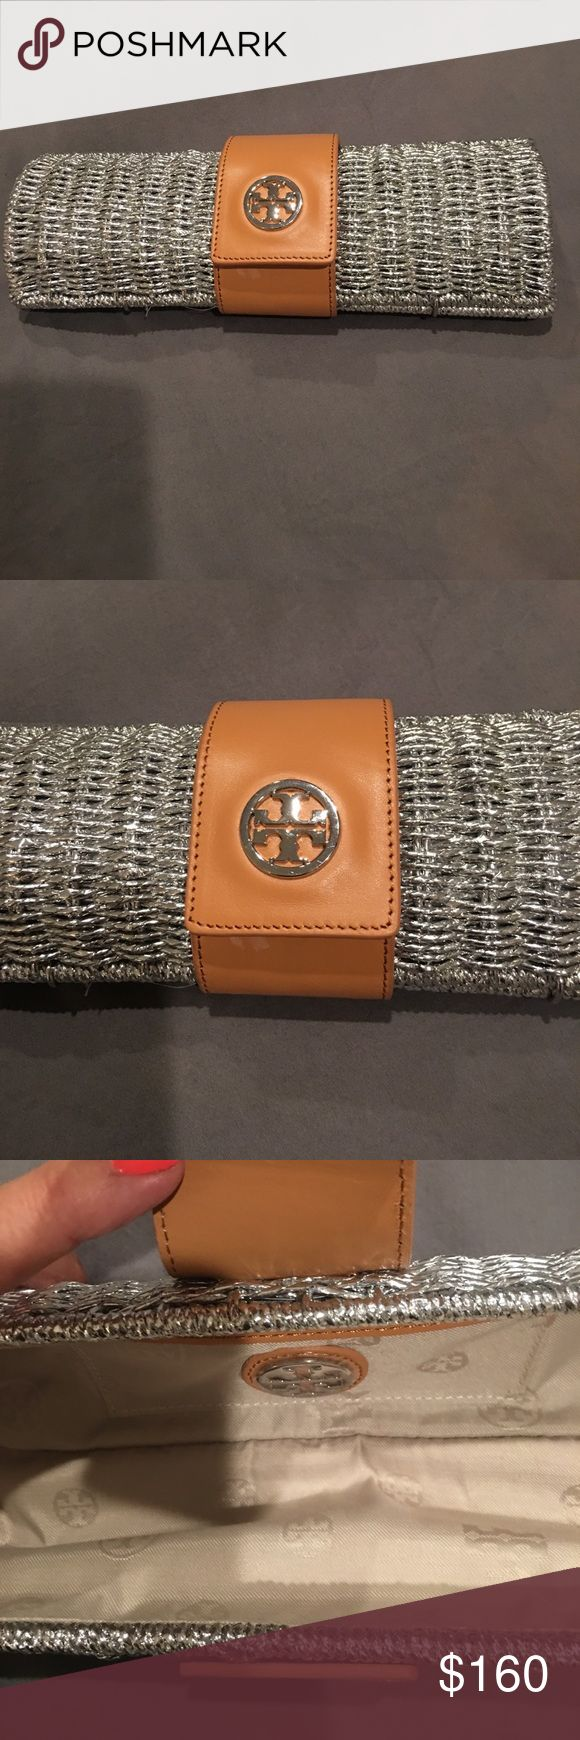 Tory Burch Silver Metallic Clutch Authentic Tory Burch silver metallic clutch with leather flap used once. Tory Burch Bags Clutches & Wristlets